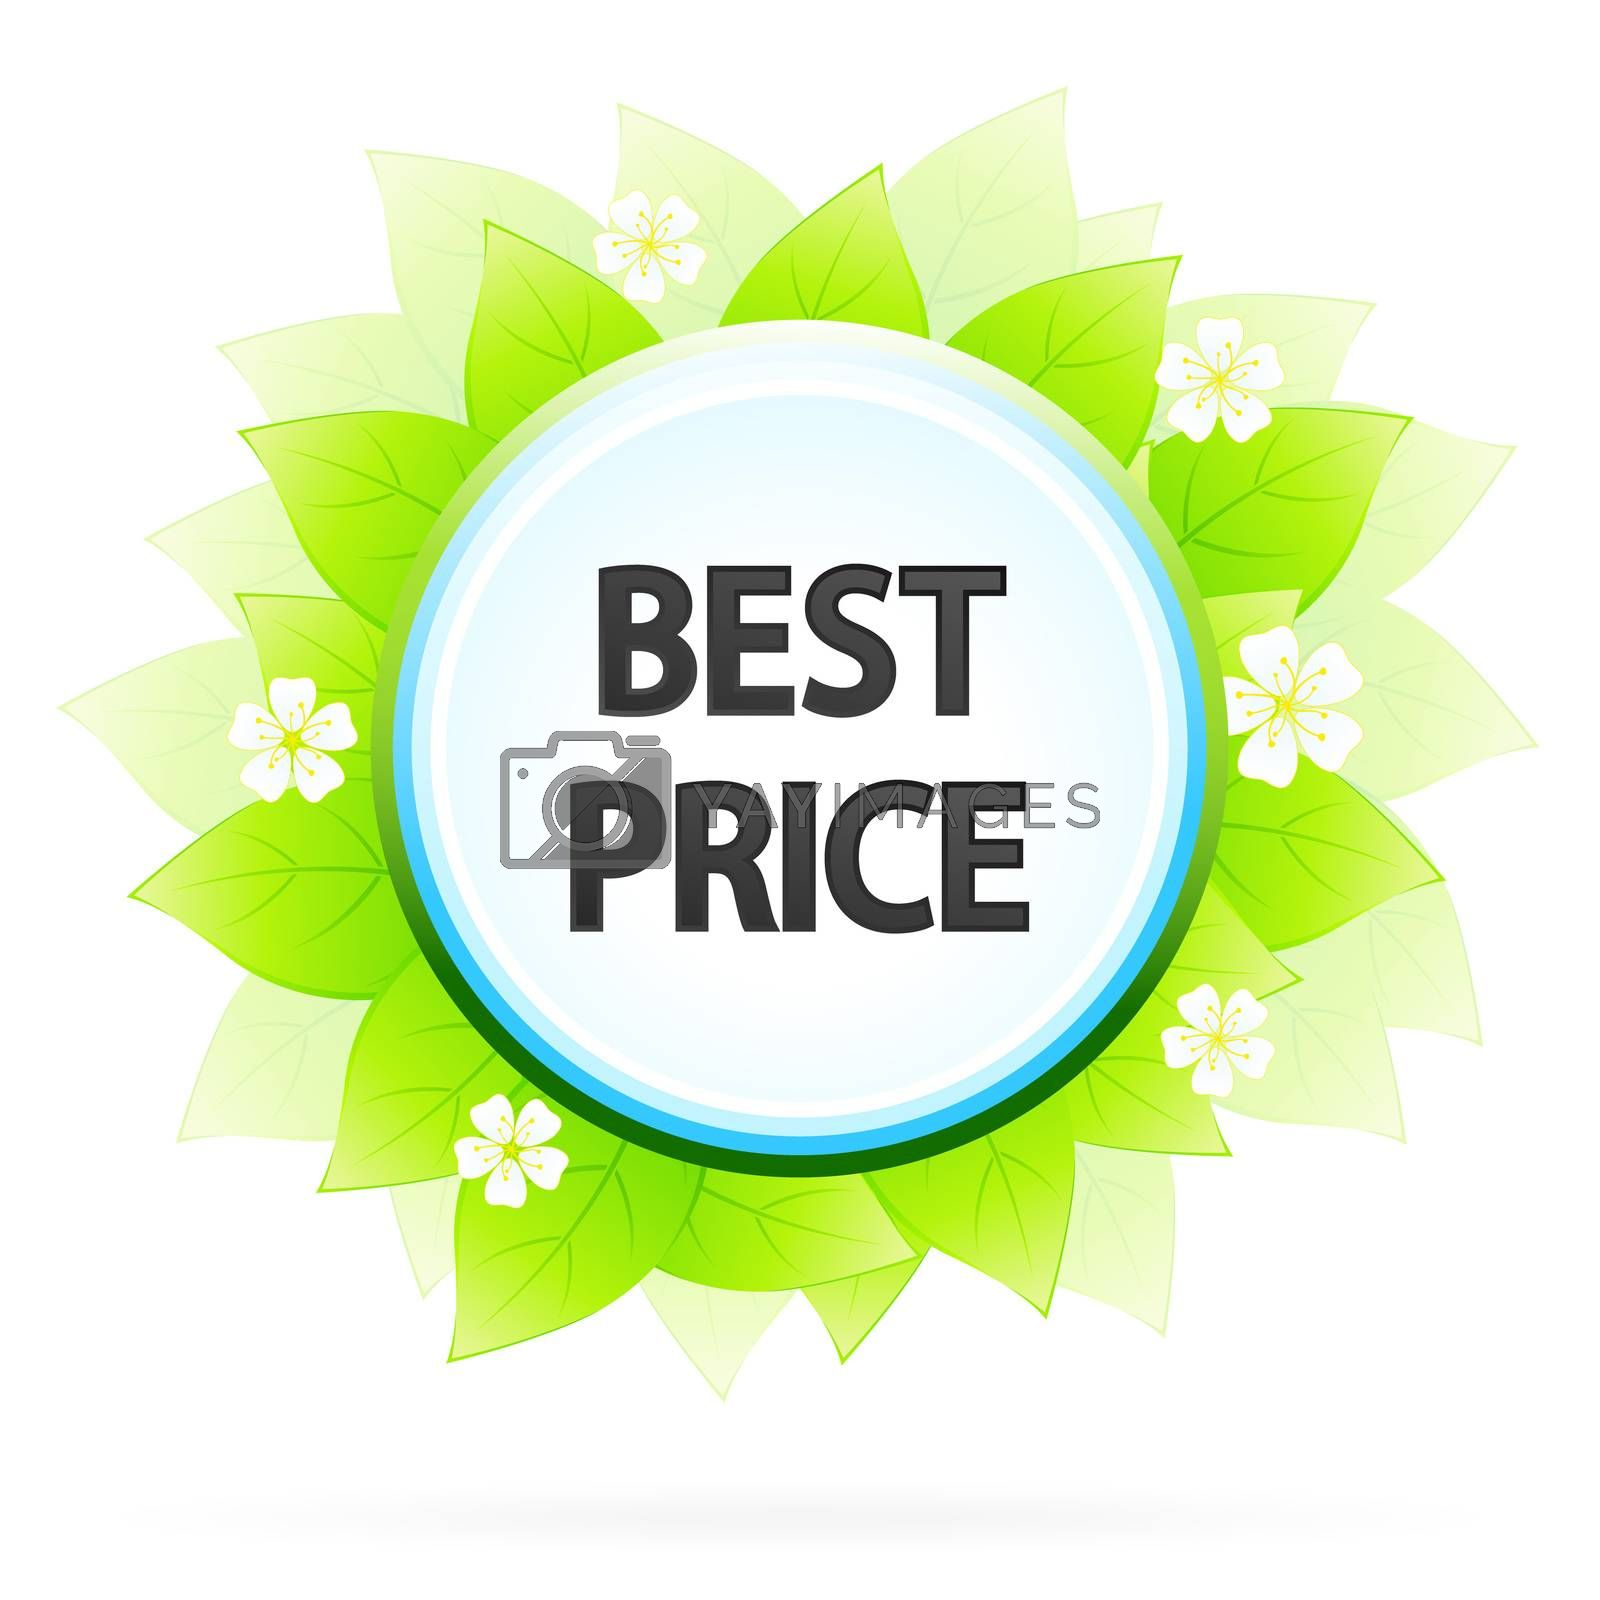 Best Price by WaD